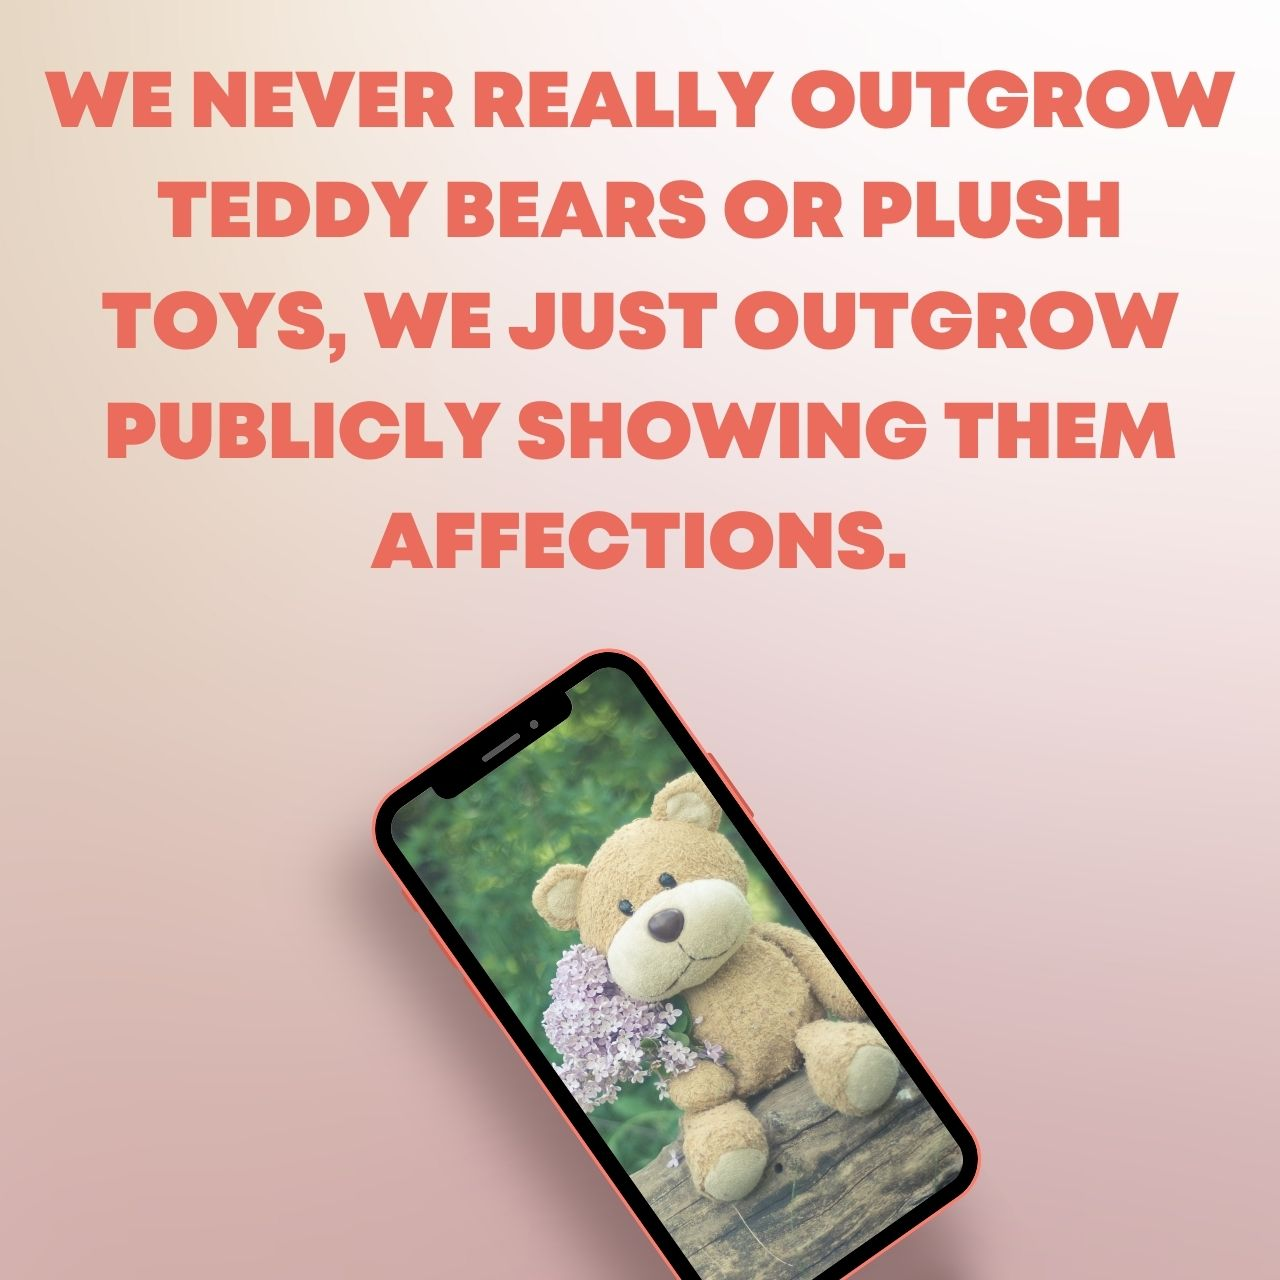 We never really outgrow teddy bears or plush toys, we just outgrow publicly showing them affections.